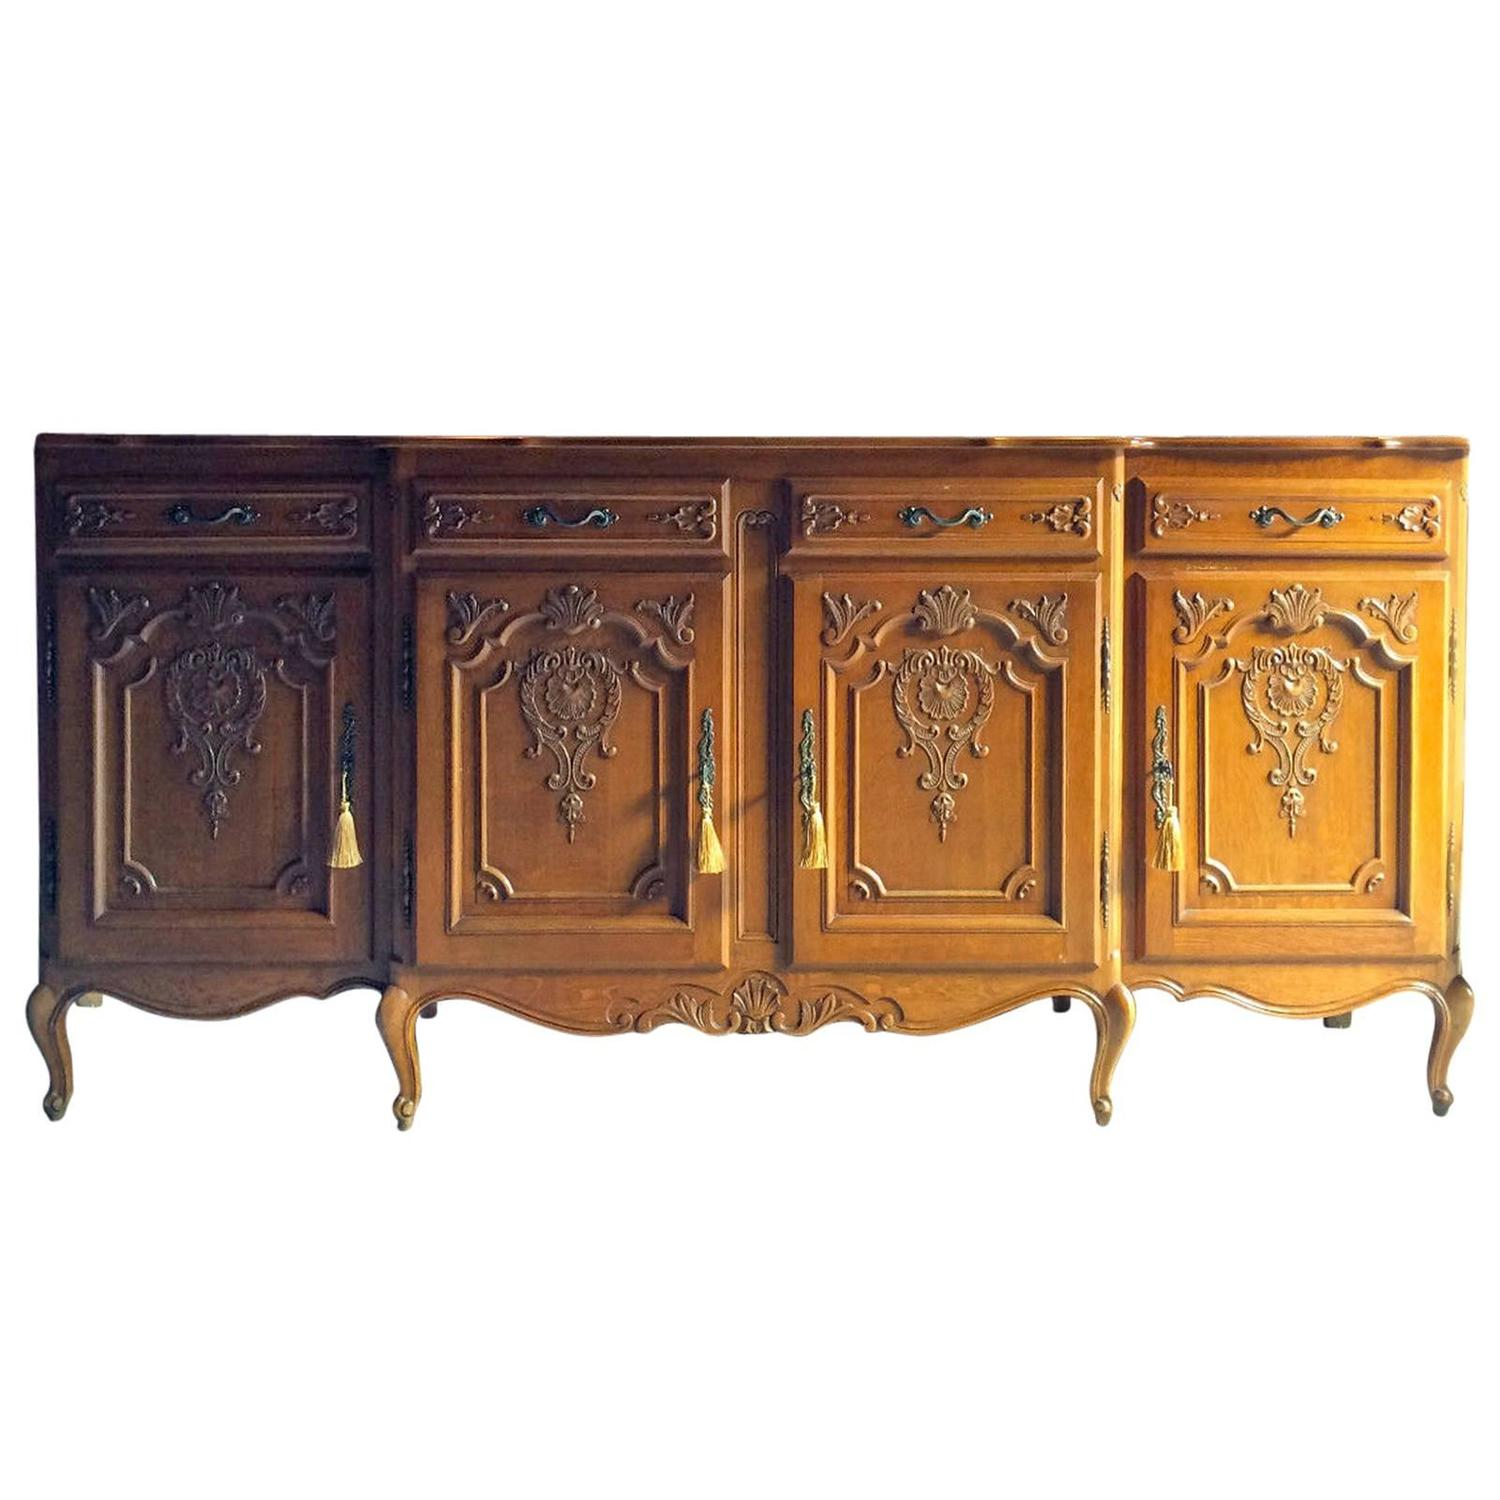 french antique style sideboard credenza golden oak buffet cupboard dresser at 1stdibs. Black Bedroom Furniture Sets. Home Design Ideas